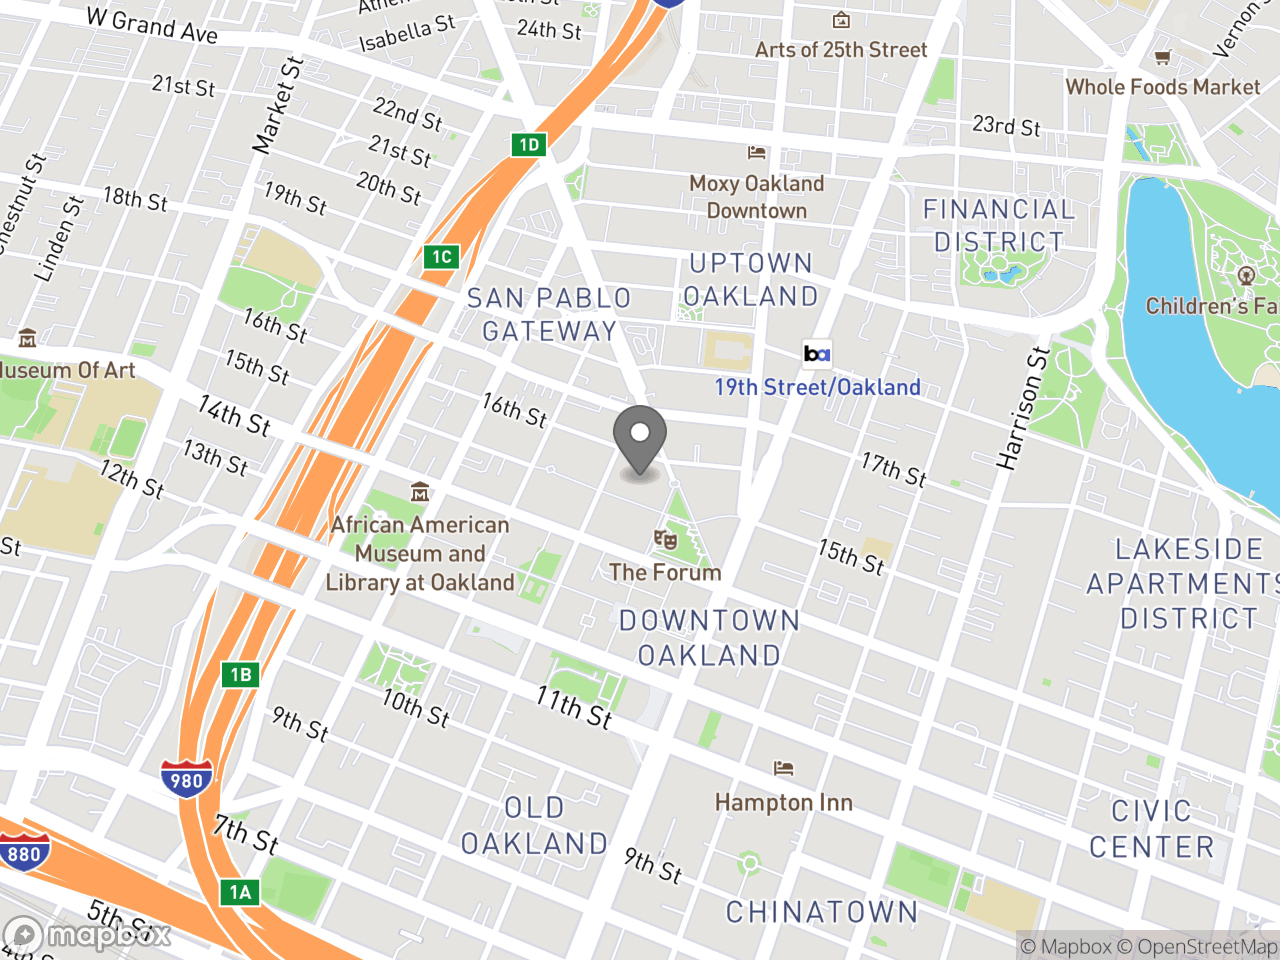 Map location for Fruitvale Alive! Gap Closure Project (1000724), located at 250 Frank H. Ogawa Plaza in Oakland, CA 94612